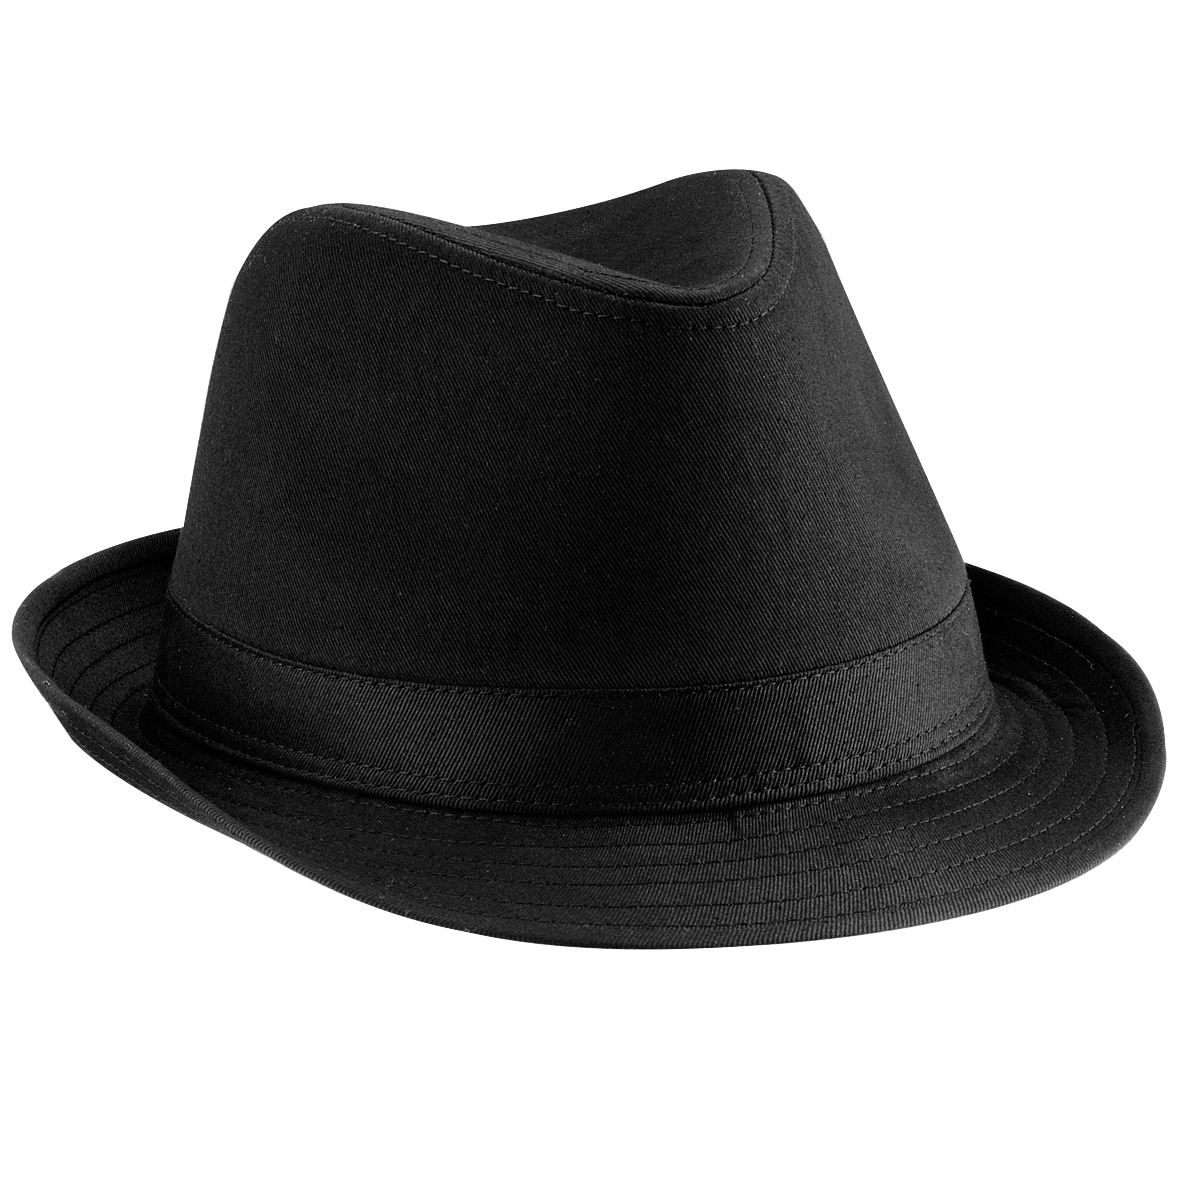 Buy hats online UK at competitive prices in your favorite style and size. Style Hats is a one stop name to shop hats online or bring home vintage style hats. Place your order from anywhere and anytime.